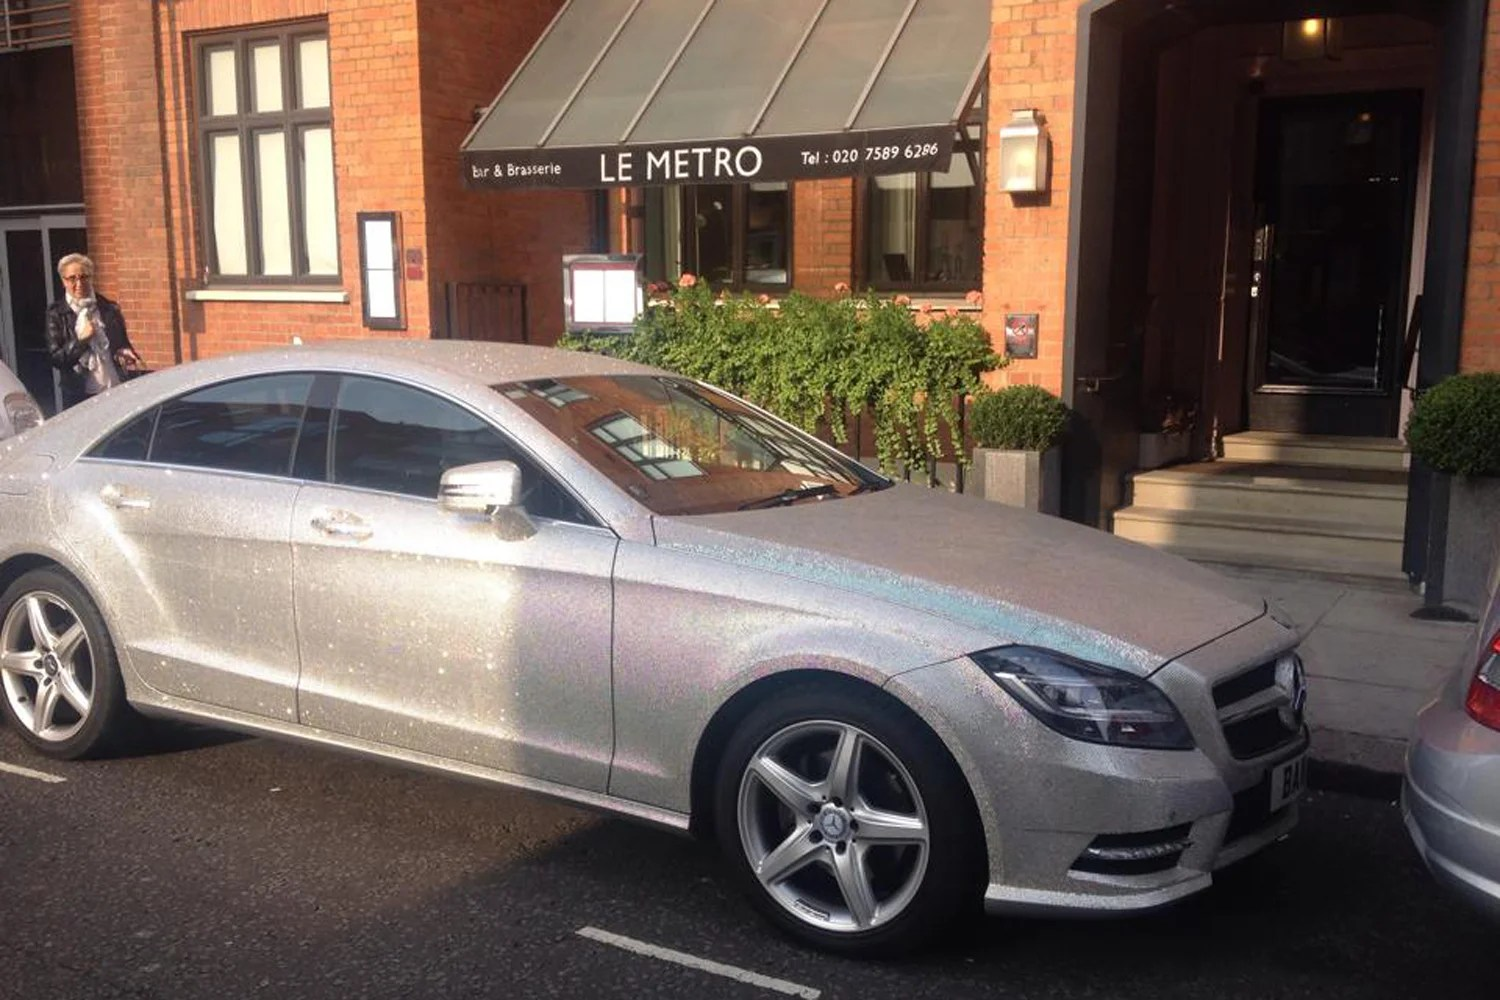 Merc London Italia Ultimate Bling Bling Car Covered In Diamonds Pictured In